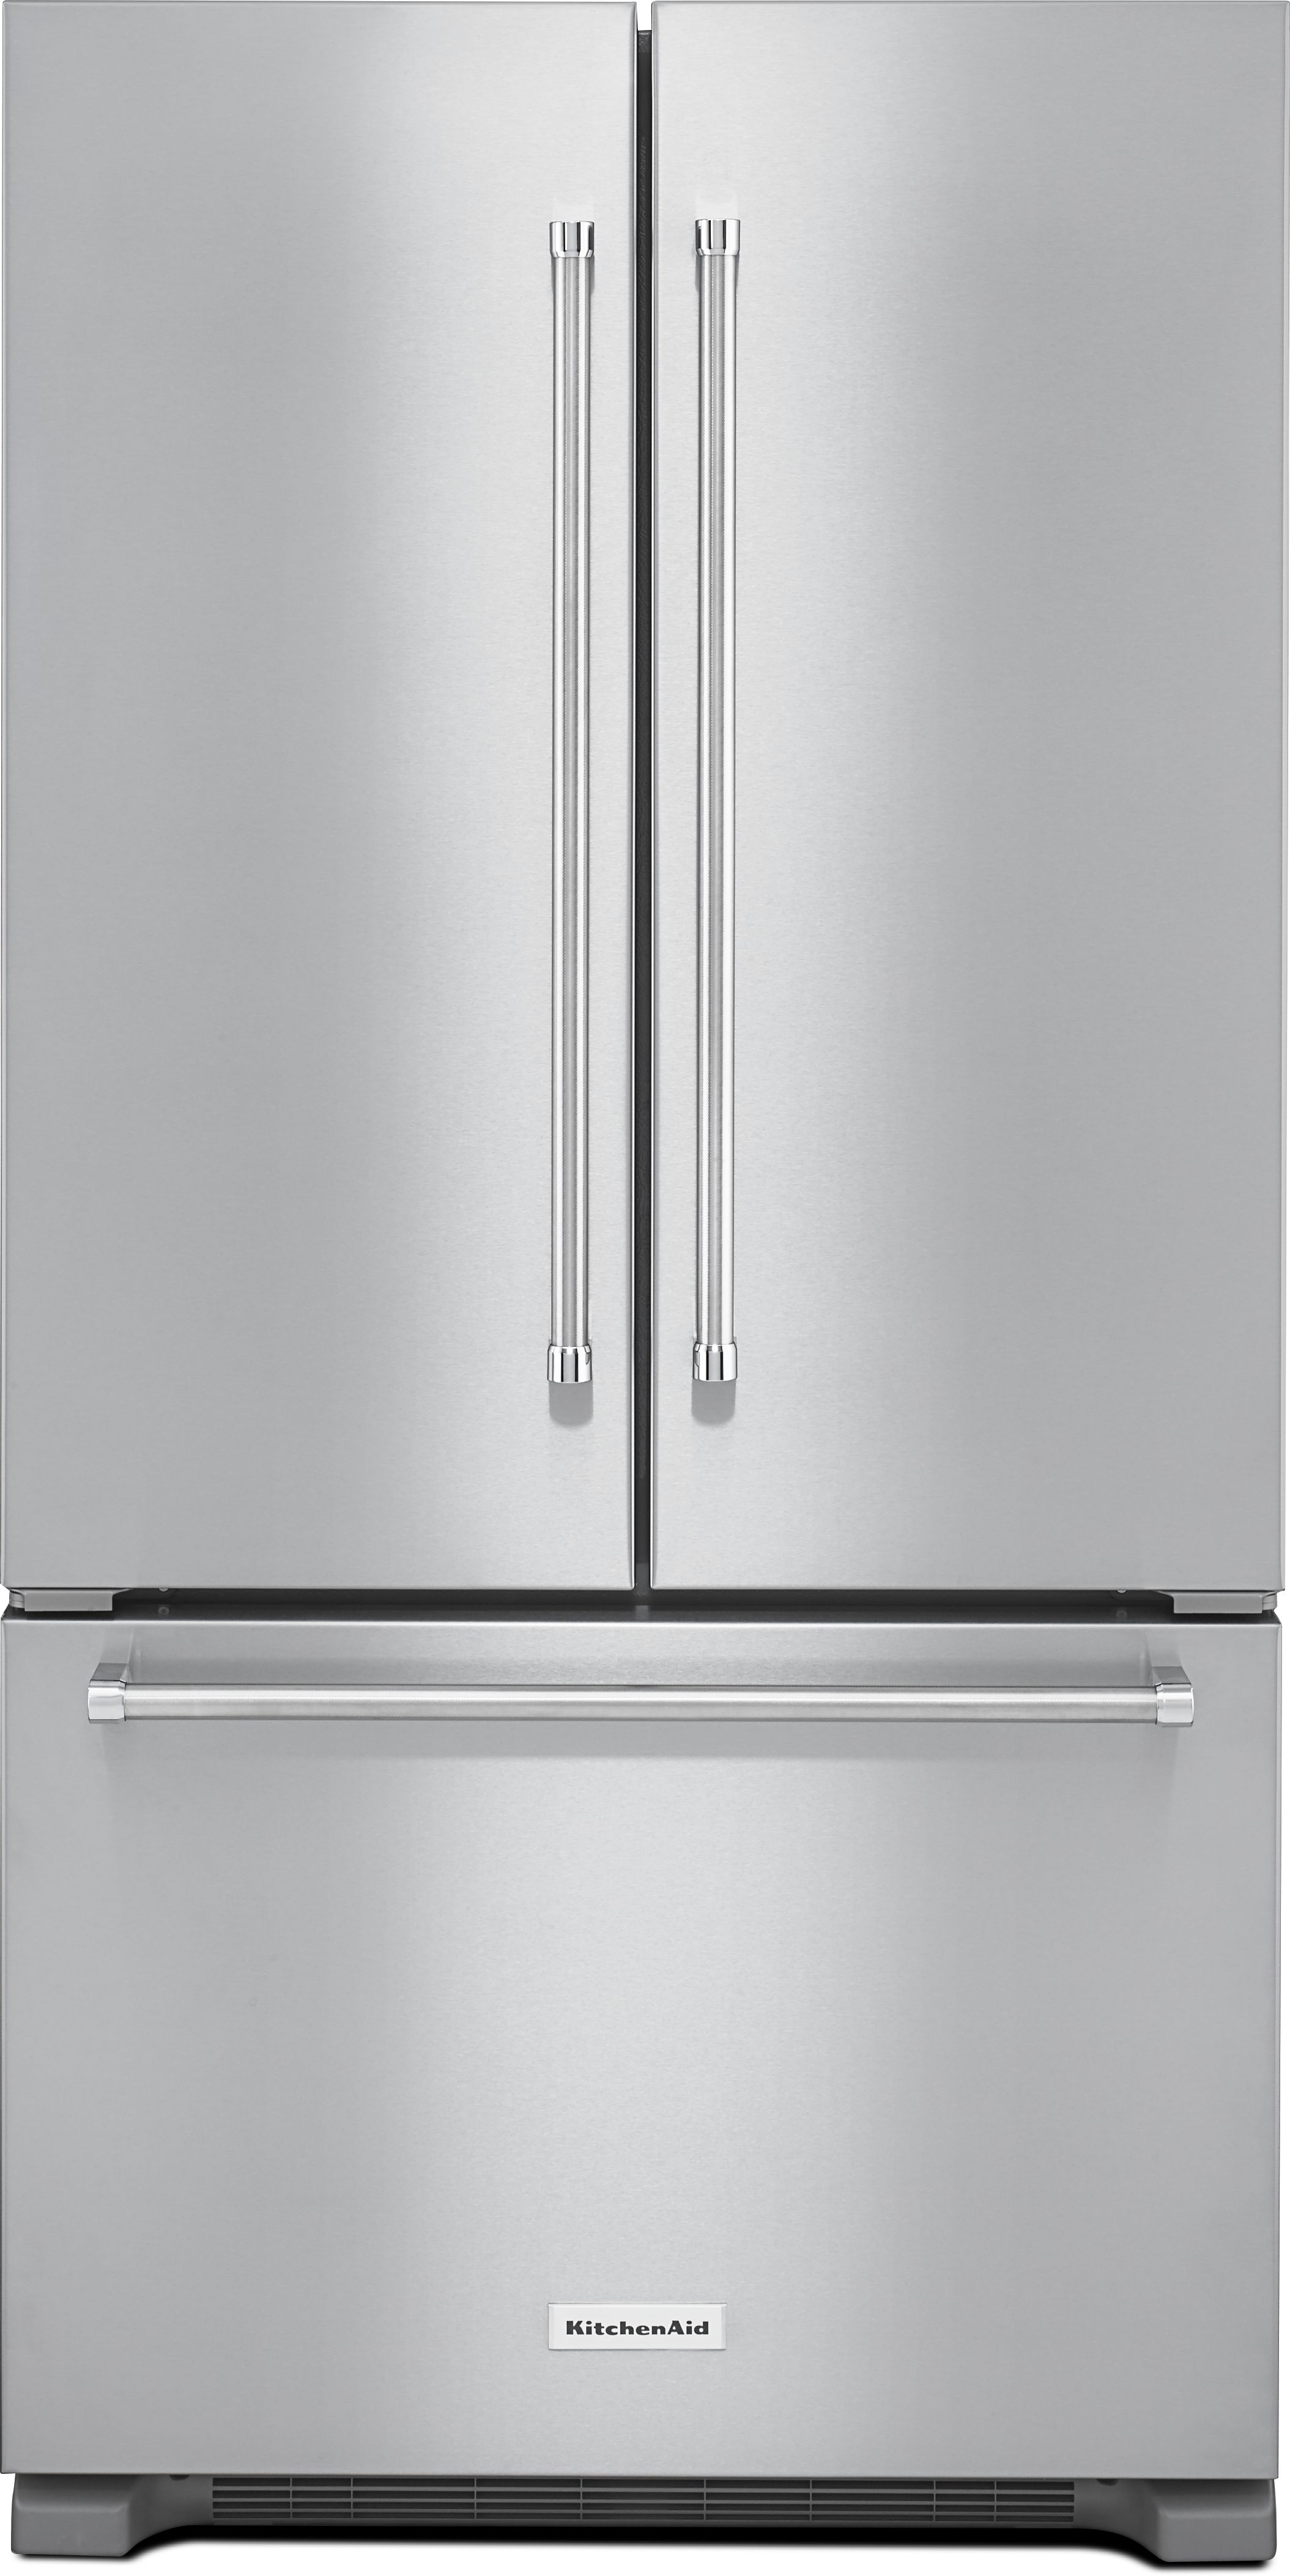 Pleasant Kitchenaid 22 0 Cu Ft Stainless Steel Counter Depth Beutiful Home Inspiration Ommitmahrainfo